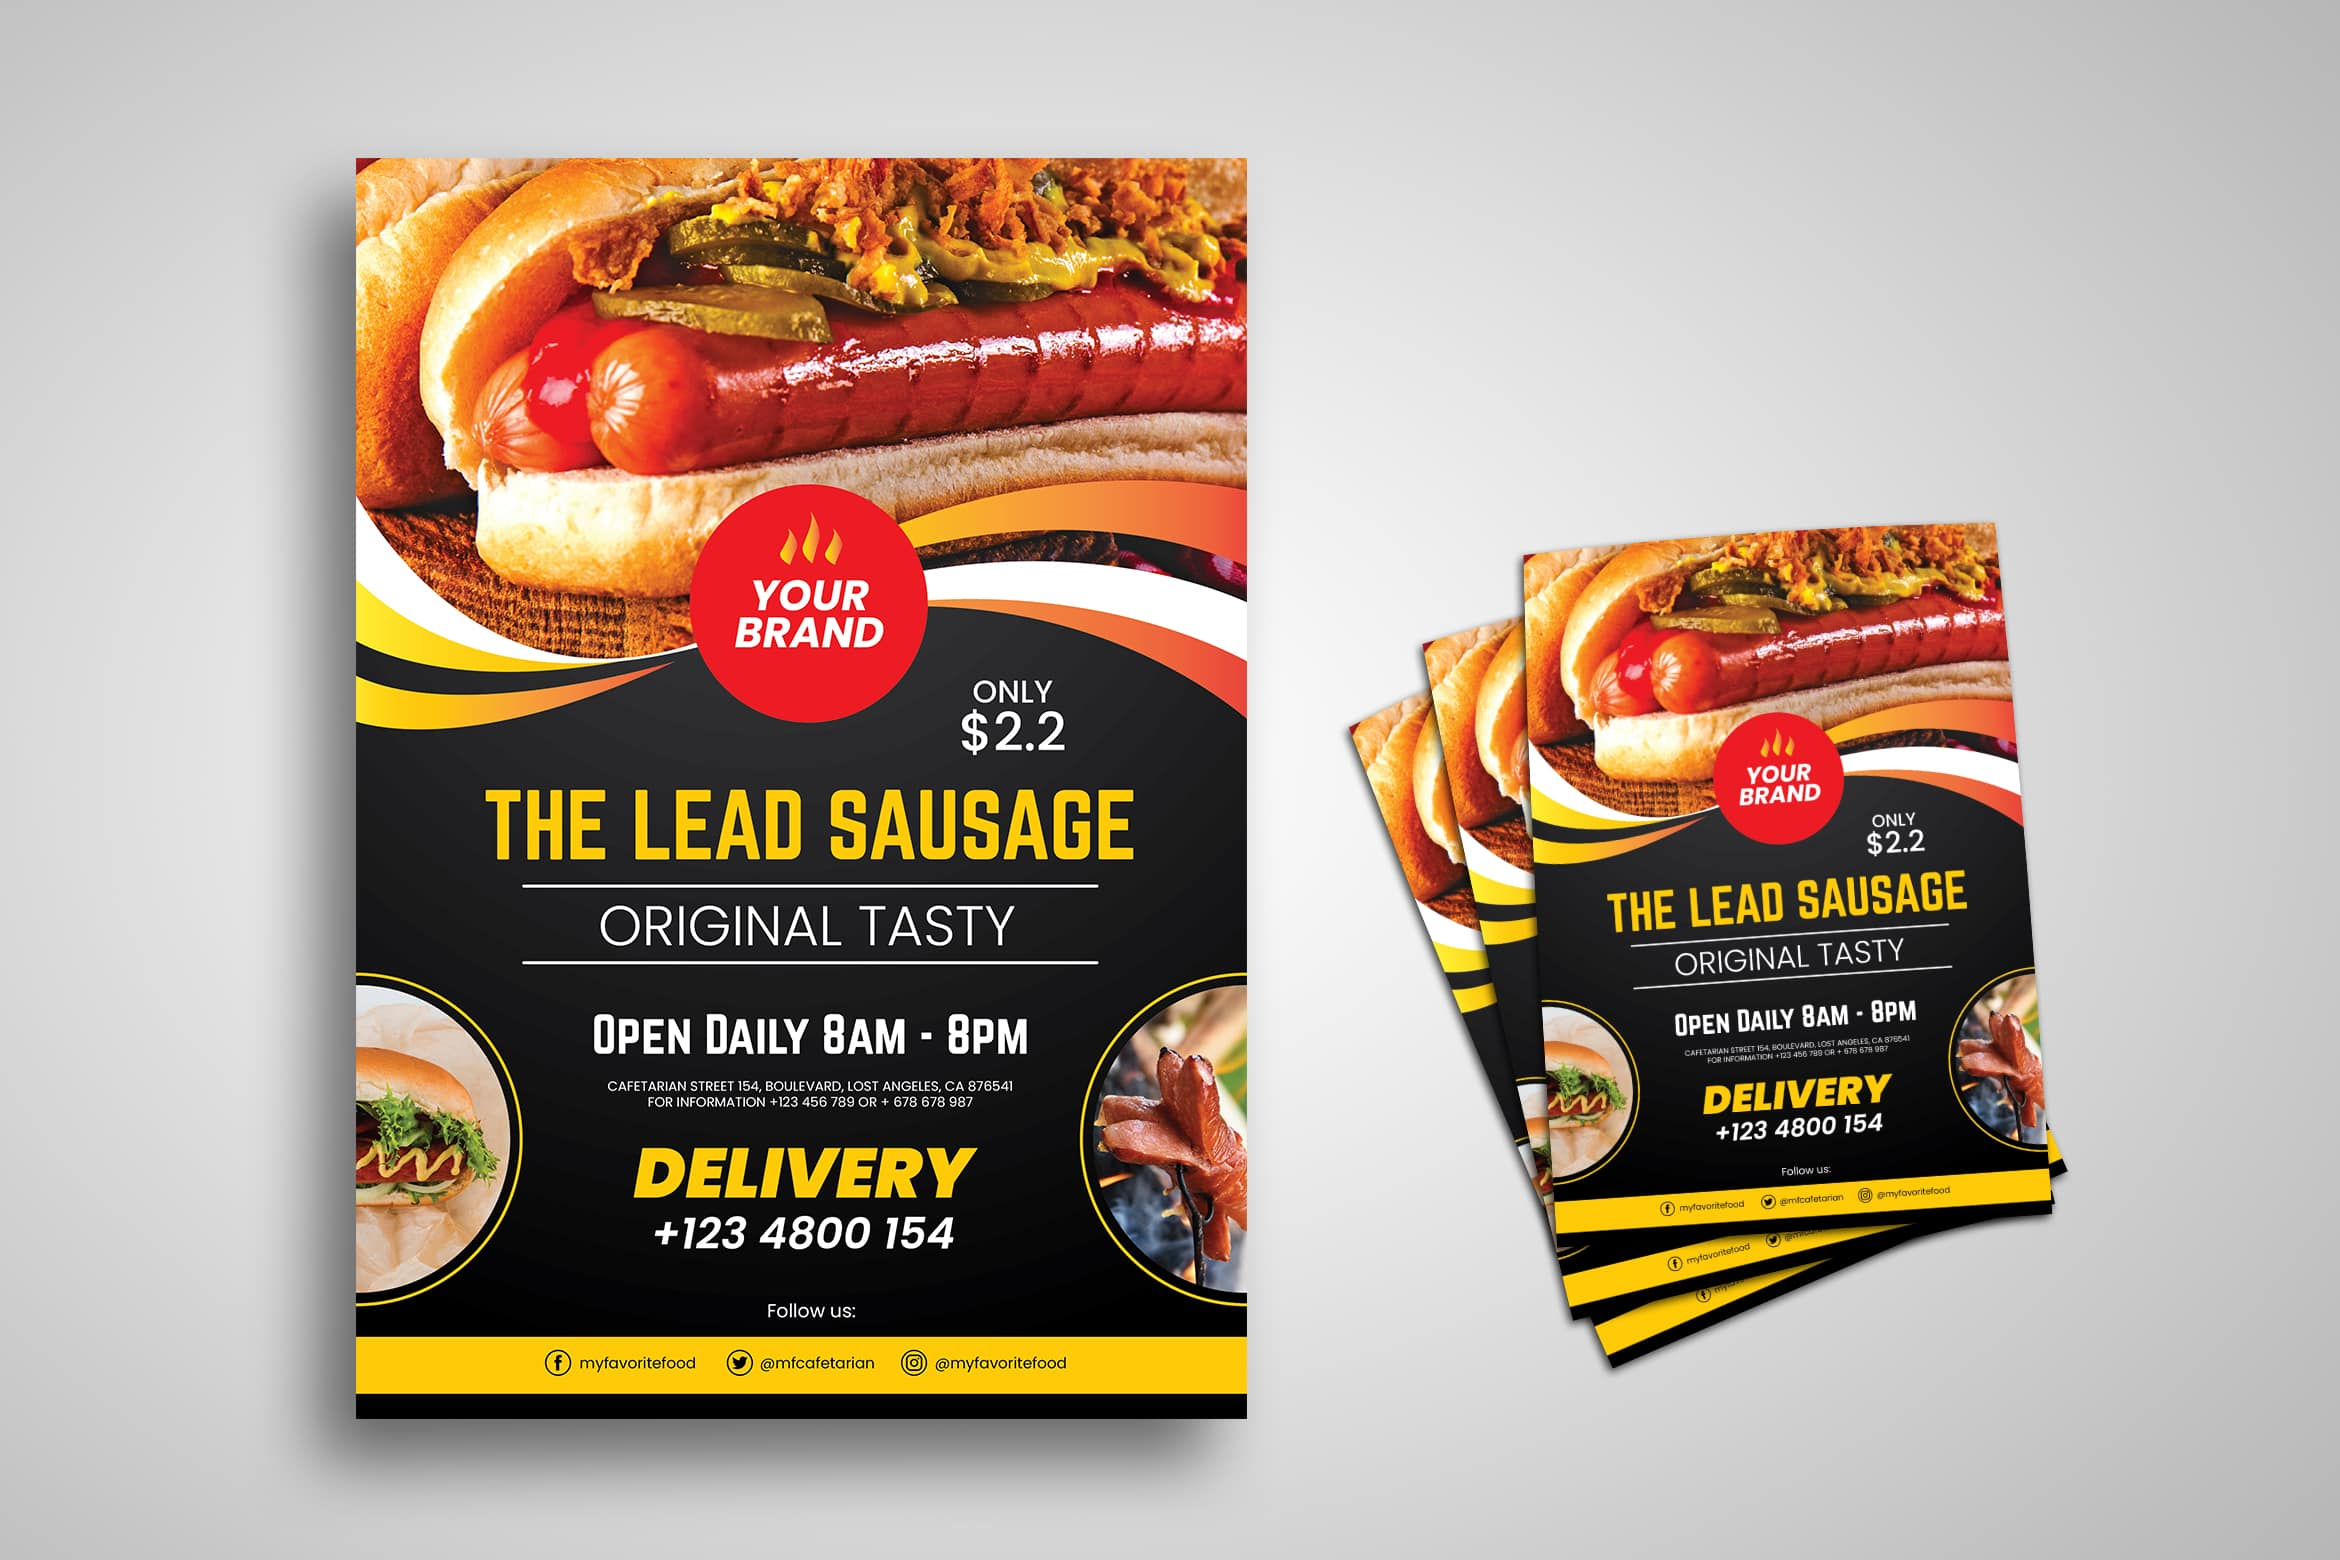 Flyer Template - Sausage Original Tasty